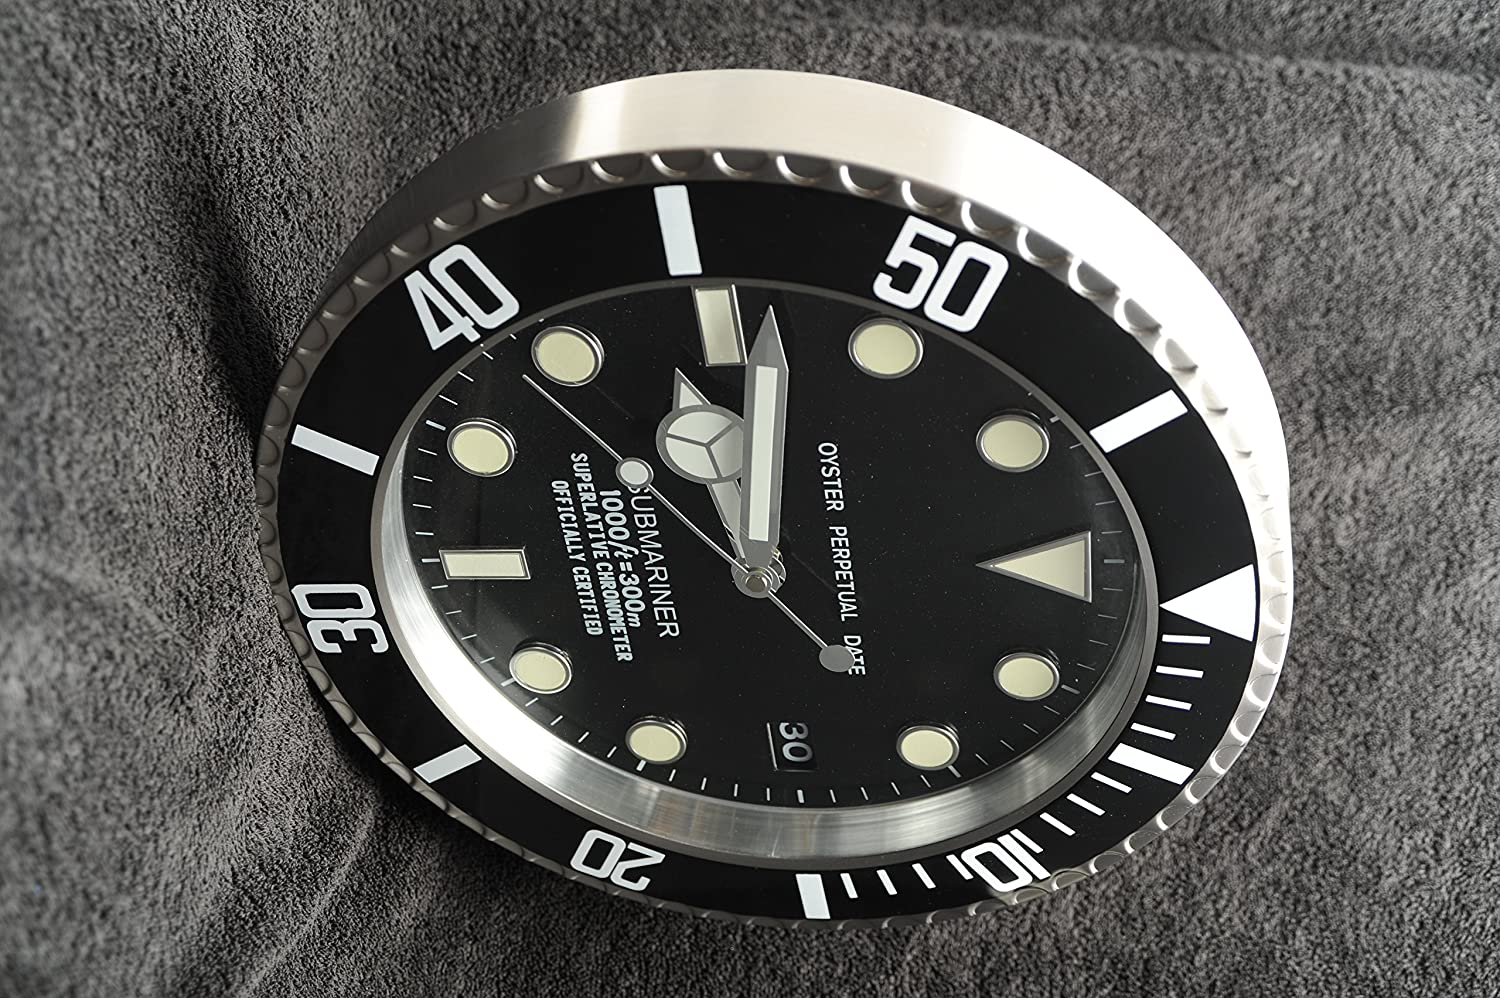 Dealer wall clock submariner gmt rolex style black amazon dealer wall clock submariner gmt rolex style black amazon kitchen home amipublicfo Gallery